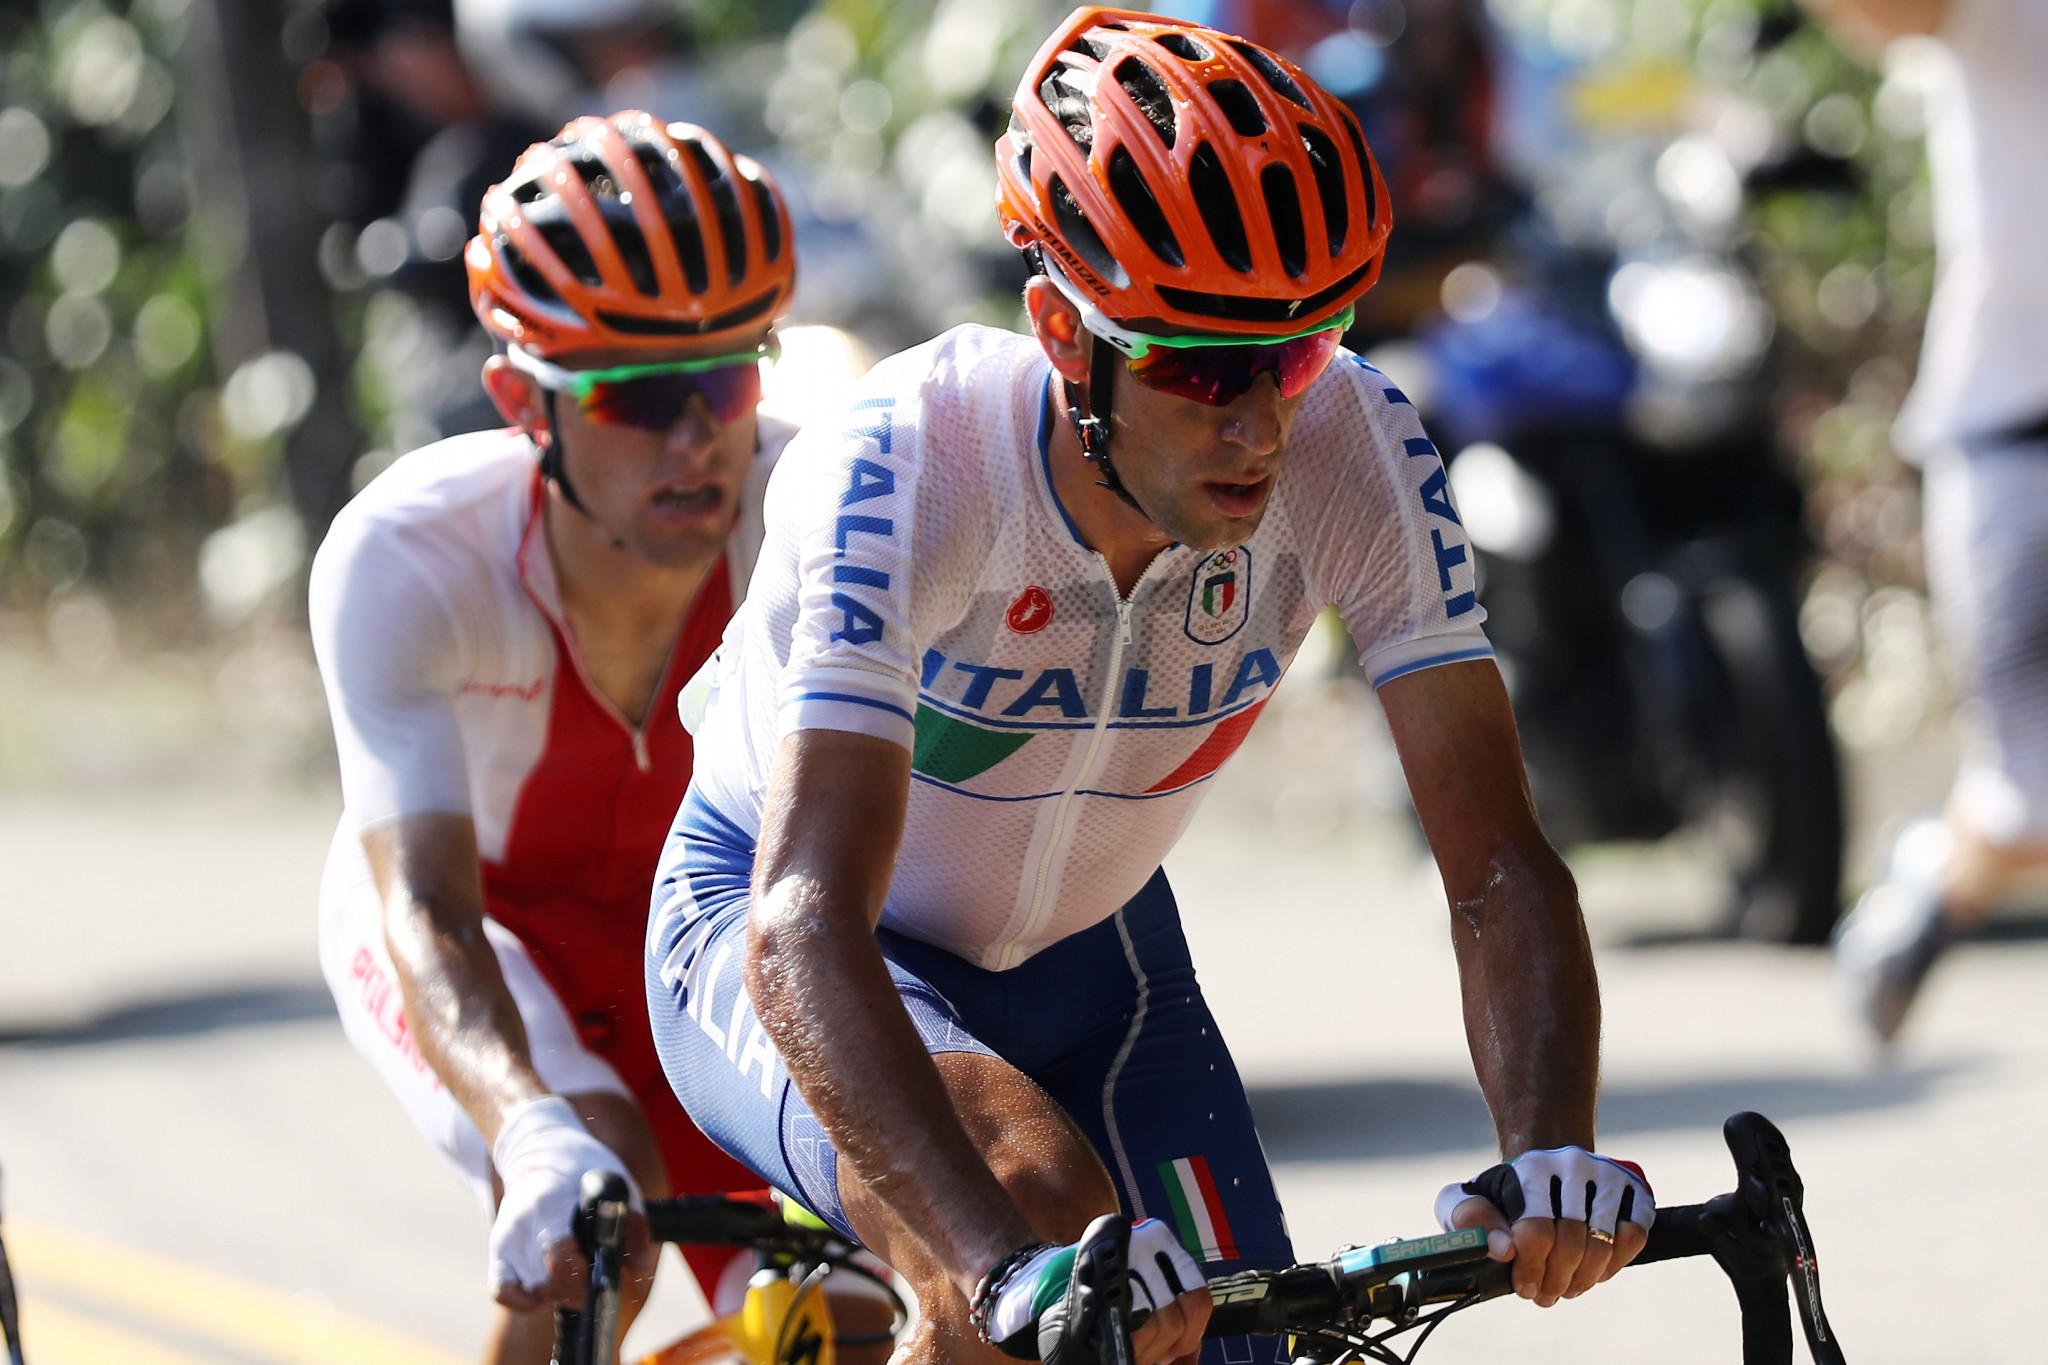 Vincenzo Nibali crashed out of the Rio 2016 road race and broke his collarbone ©Getty Images